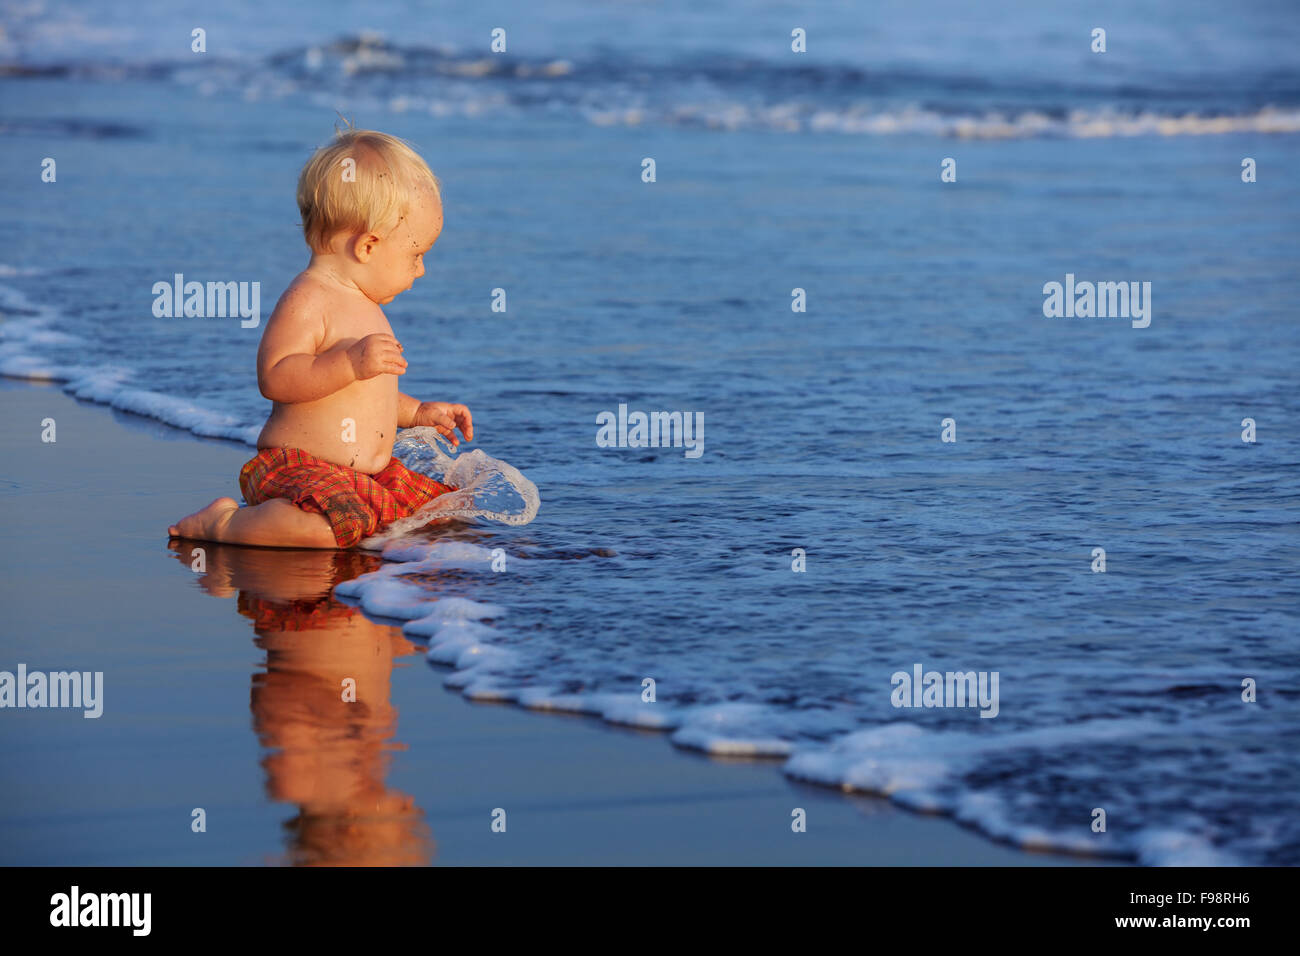 On sunset beach happy baby swimmer sit on black sand and look at sea surf with foam and splash for swimming in waves. Stock Photo